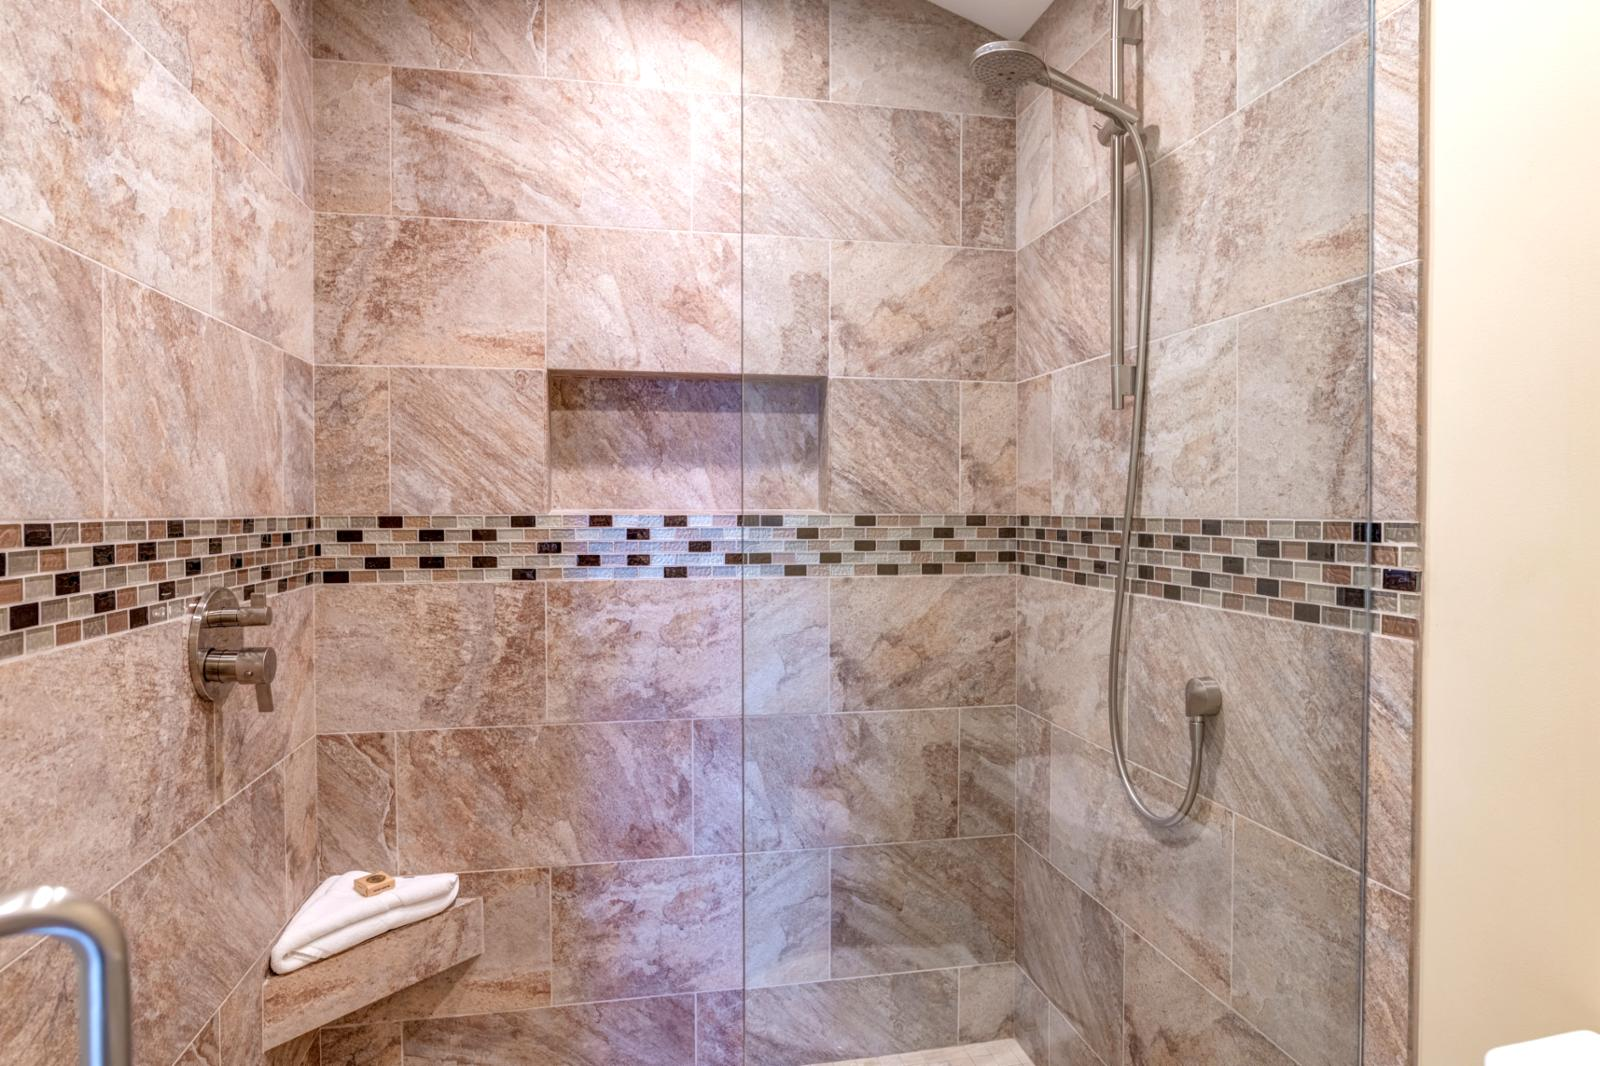 Newly Re-Modeled Walk in Showers w/ adjustable handle shower head.